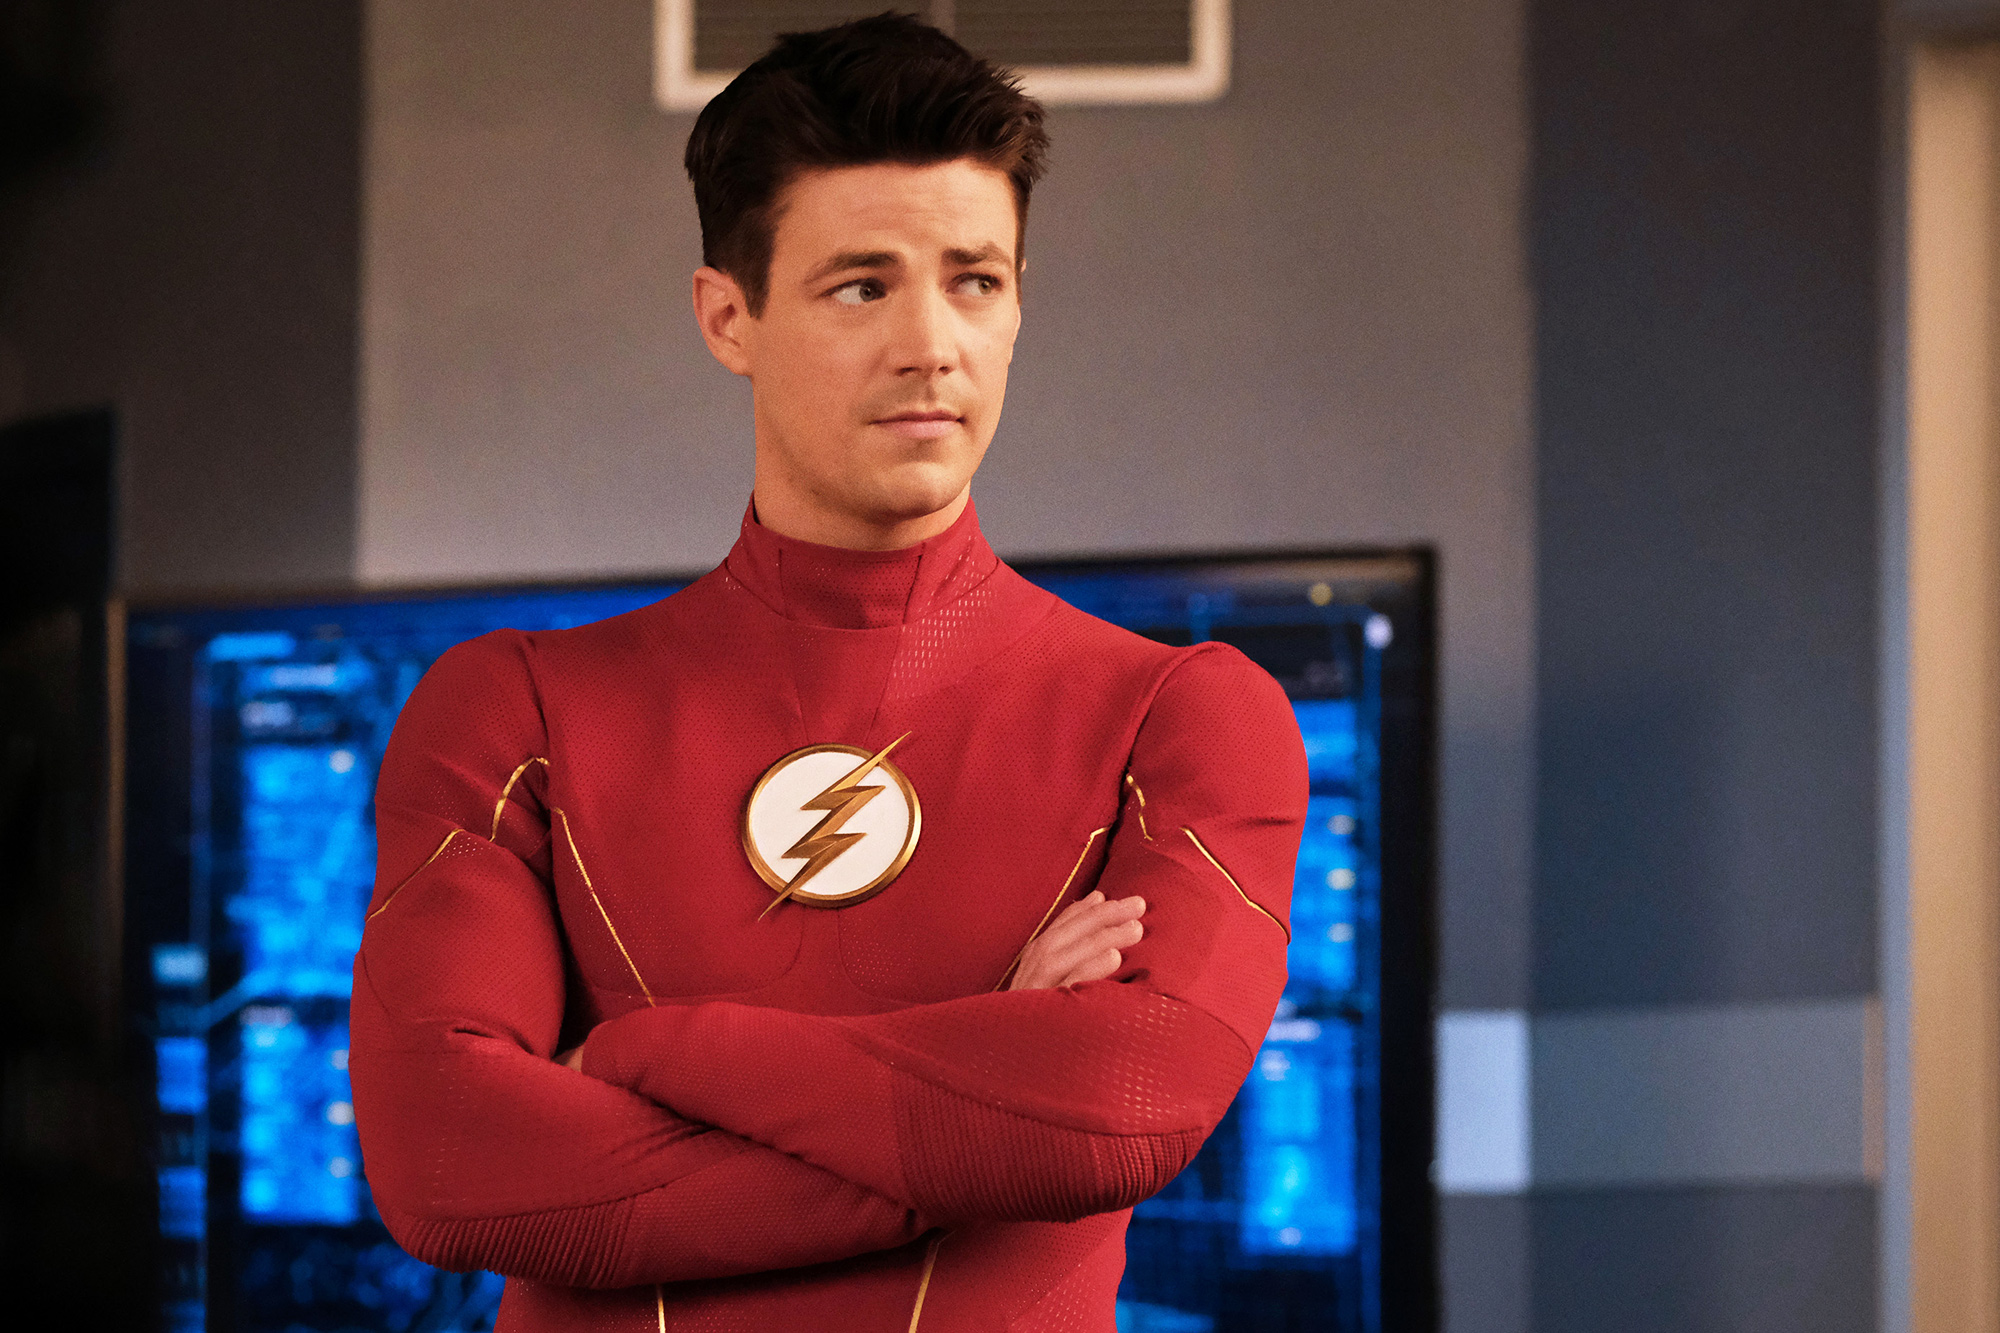 """The Flash """"Heart of the Matter, Part 1"""" Pictured: Grant Gustin as Barry Allen/The Flash"""